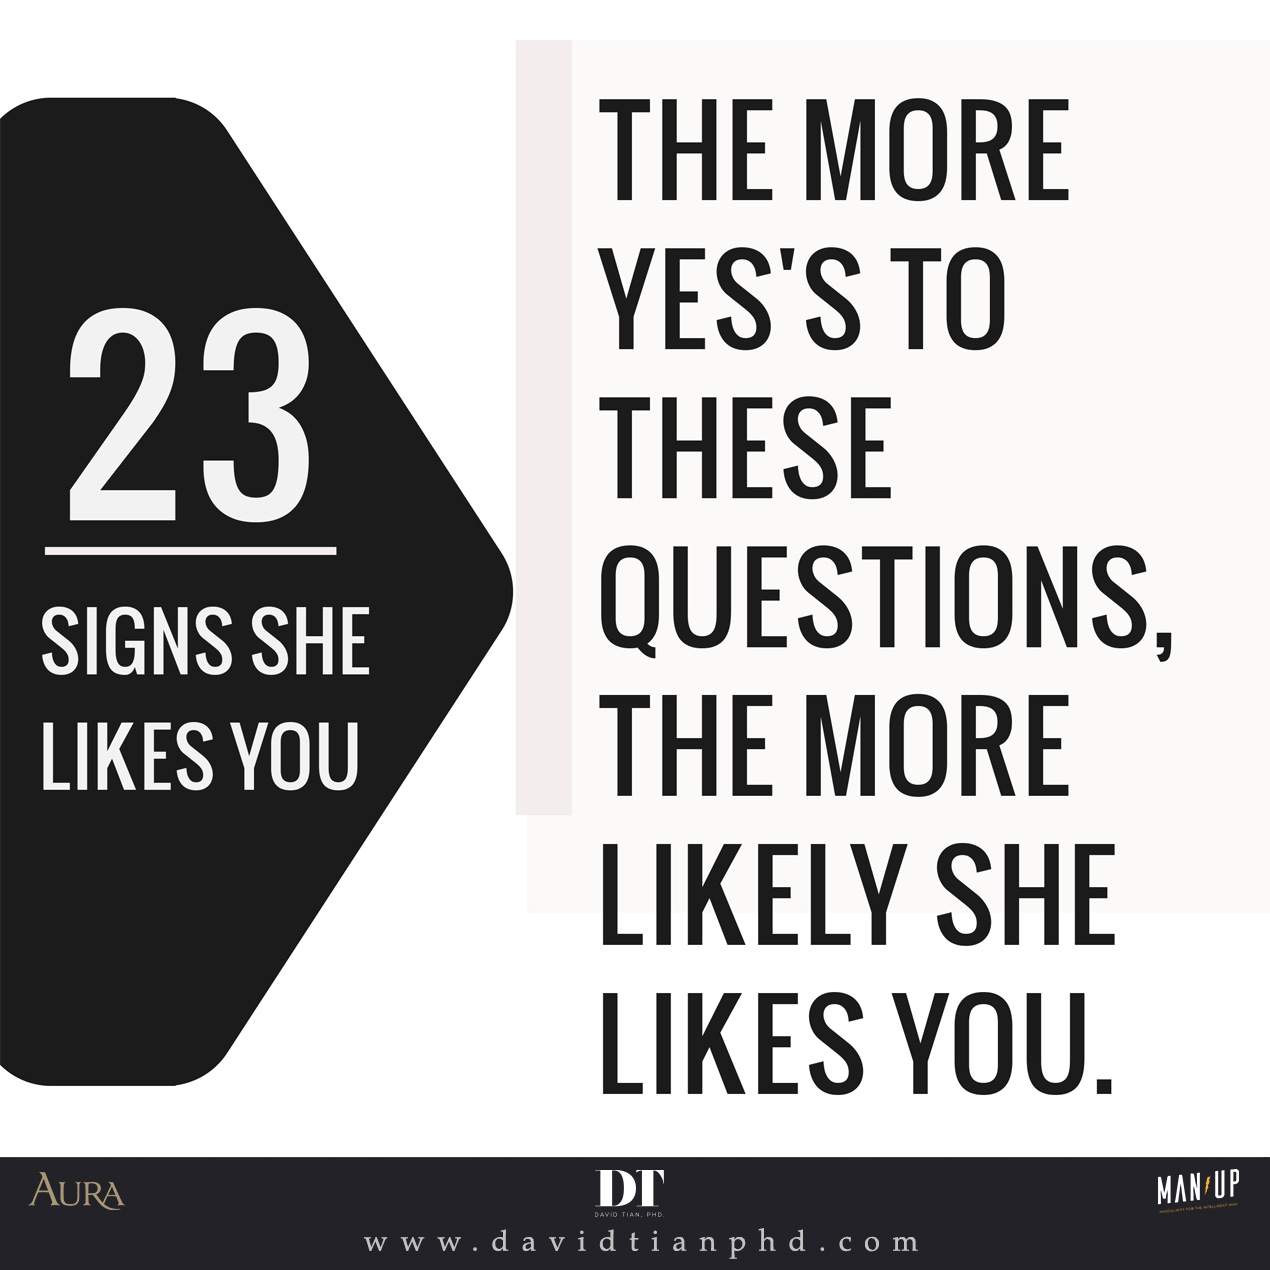 23 Signs She Likes You